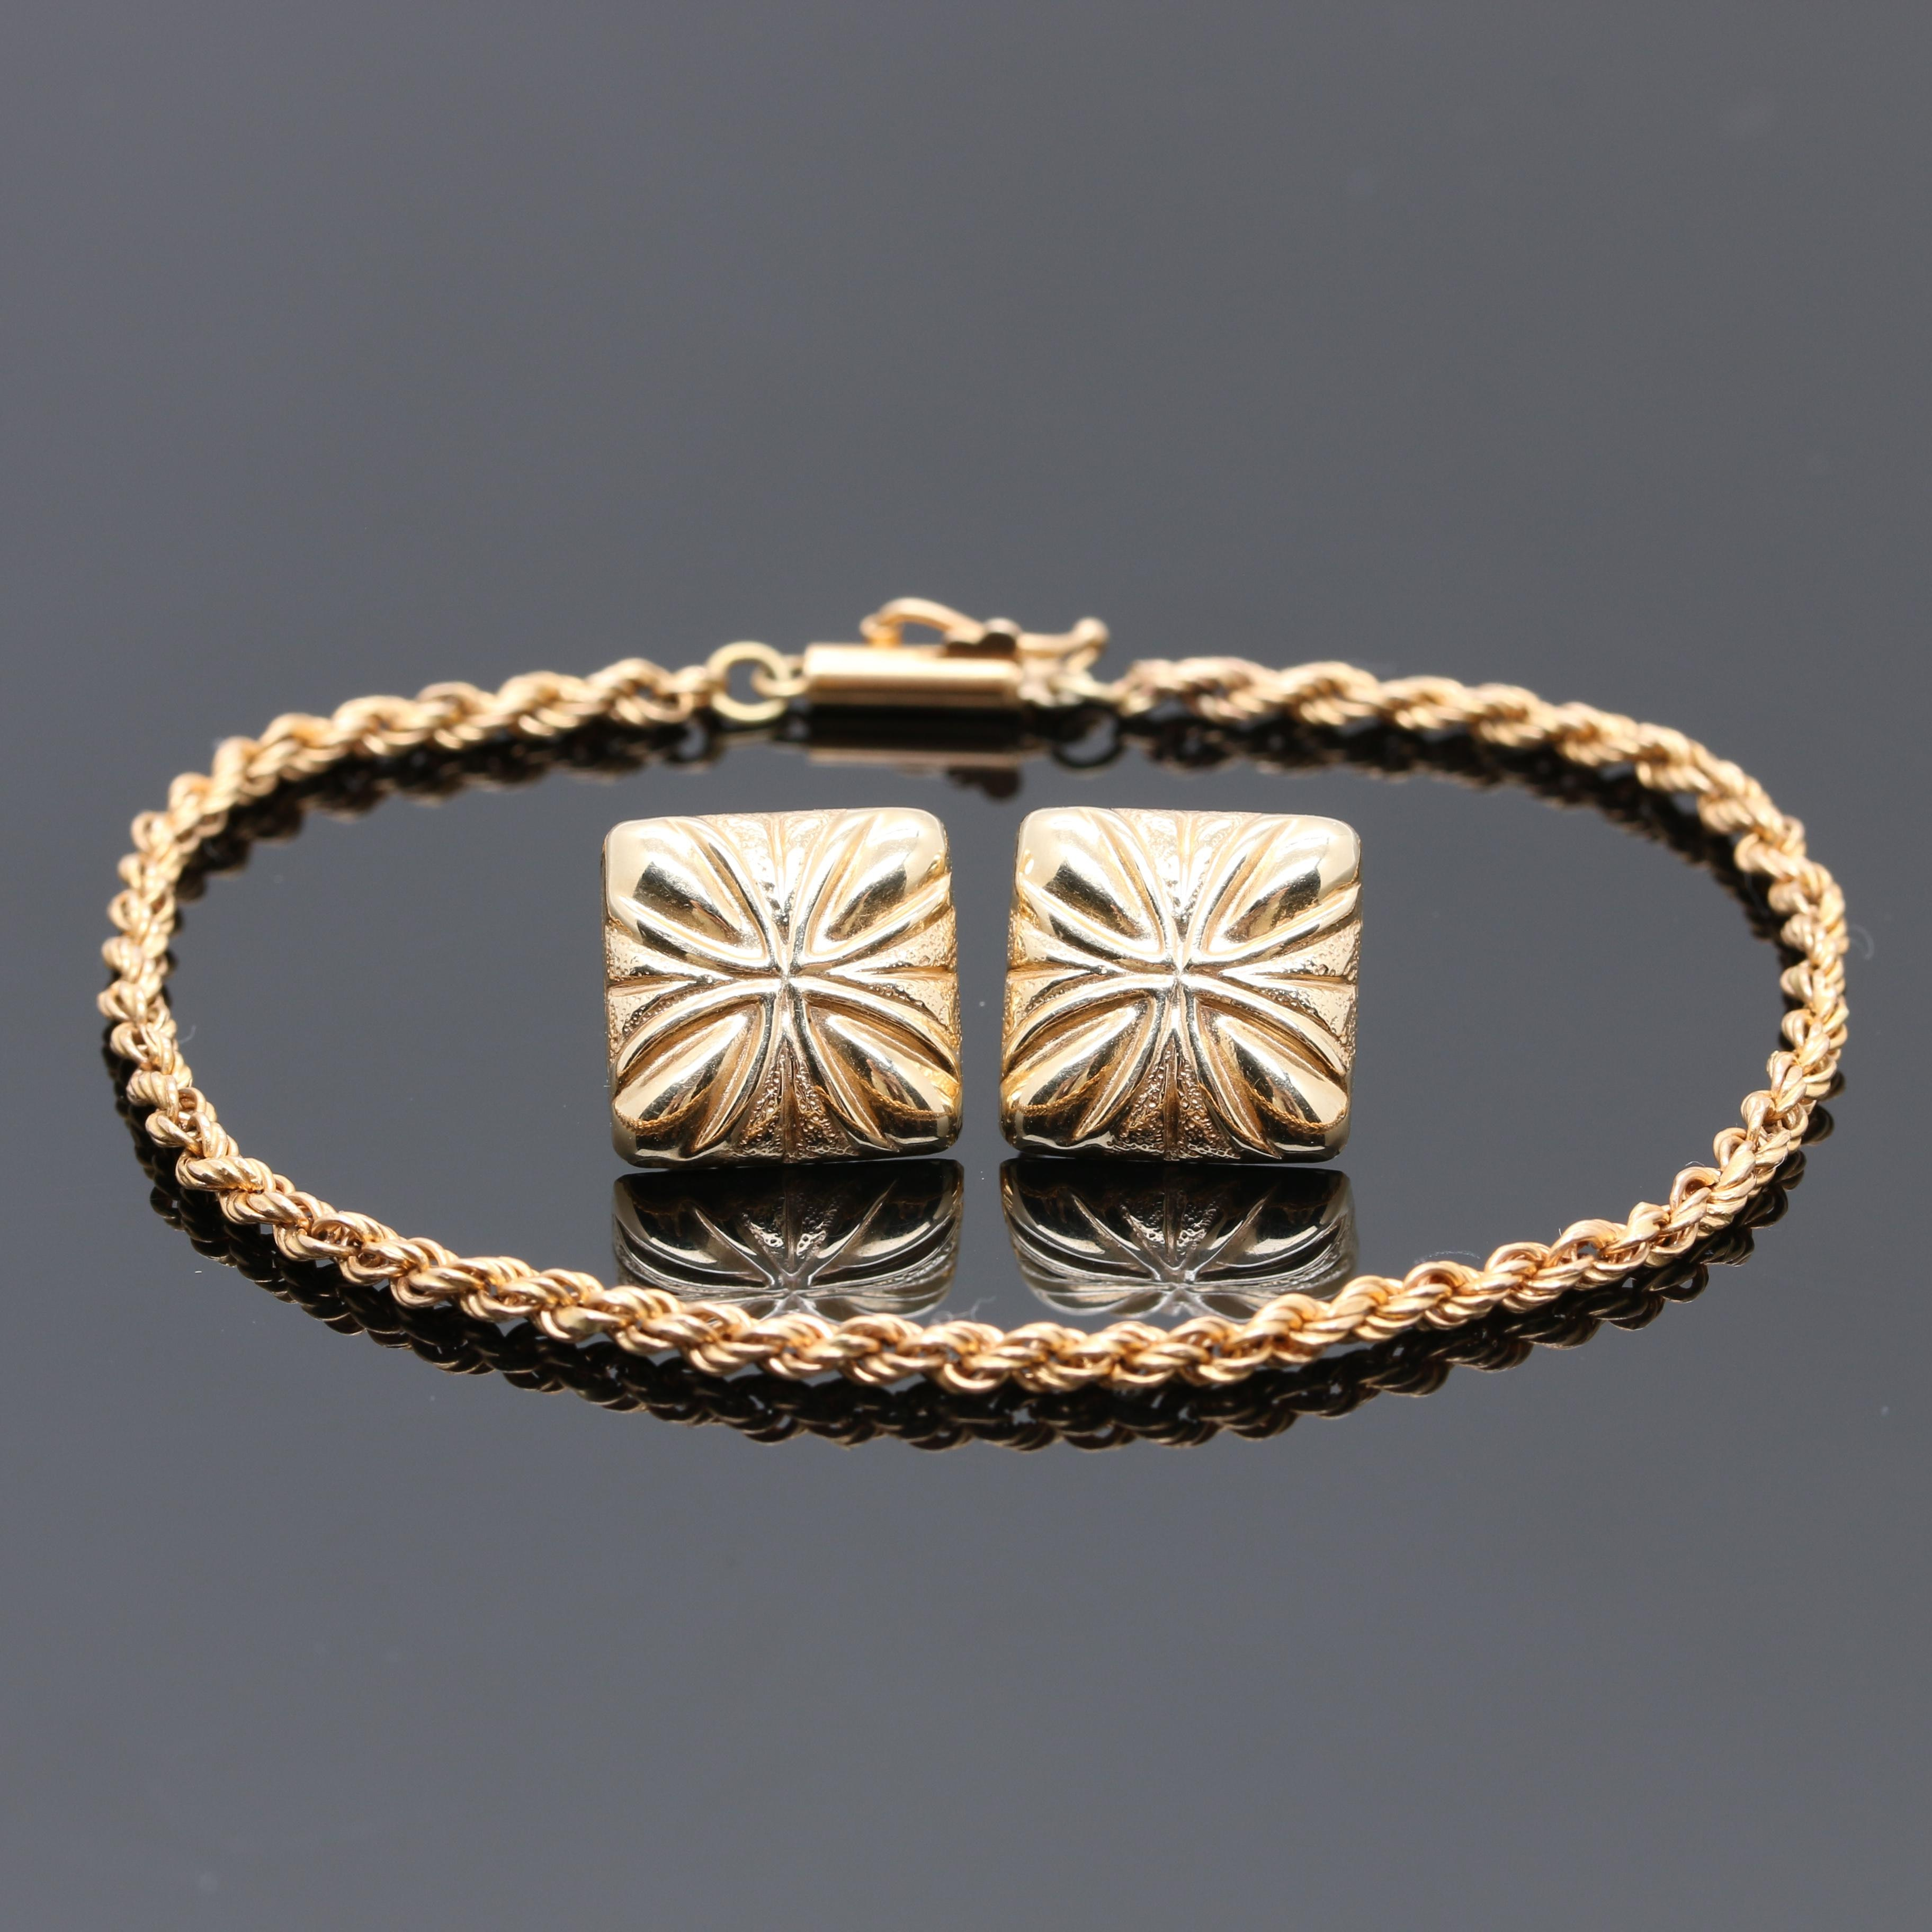 14K Yellow Gold Rope Bracelet and Earrings